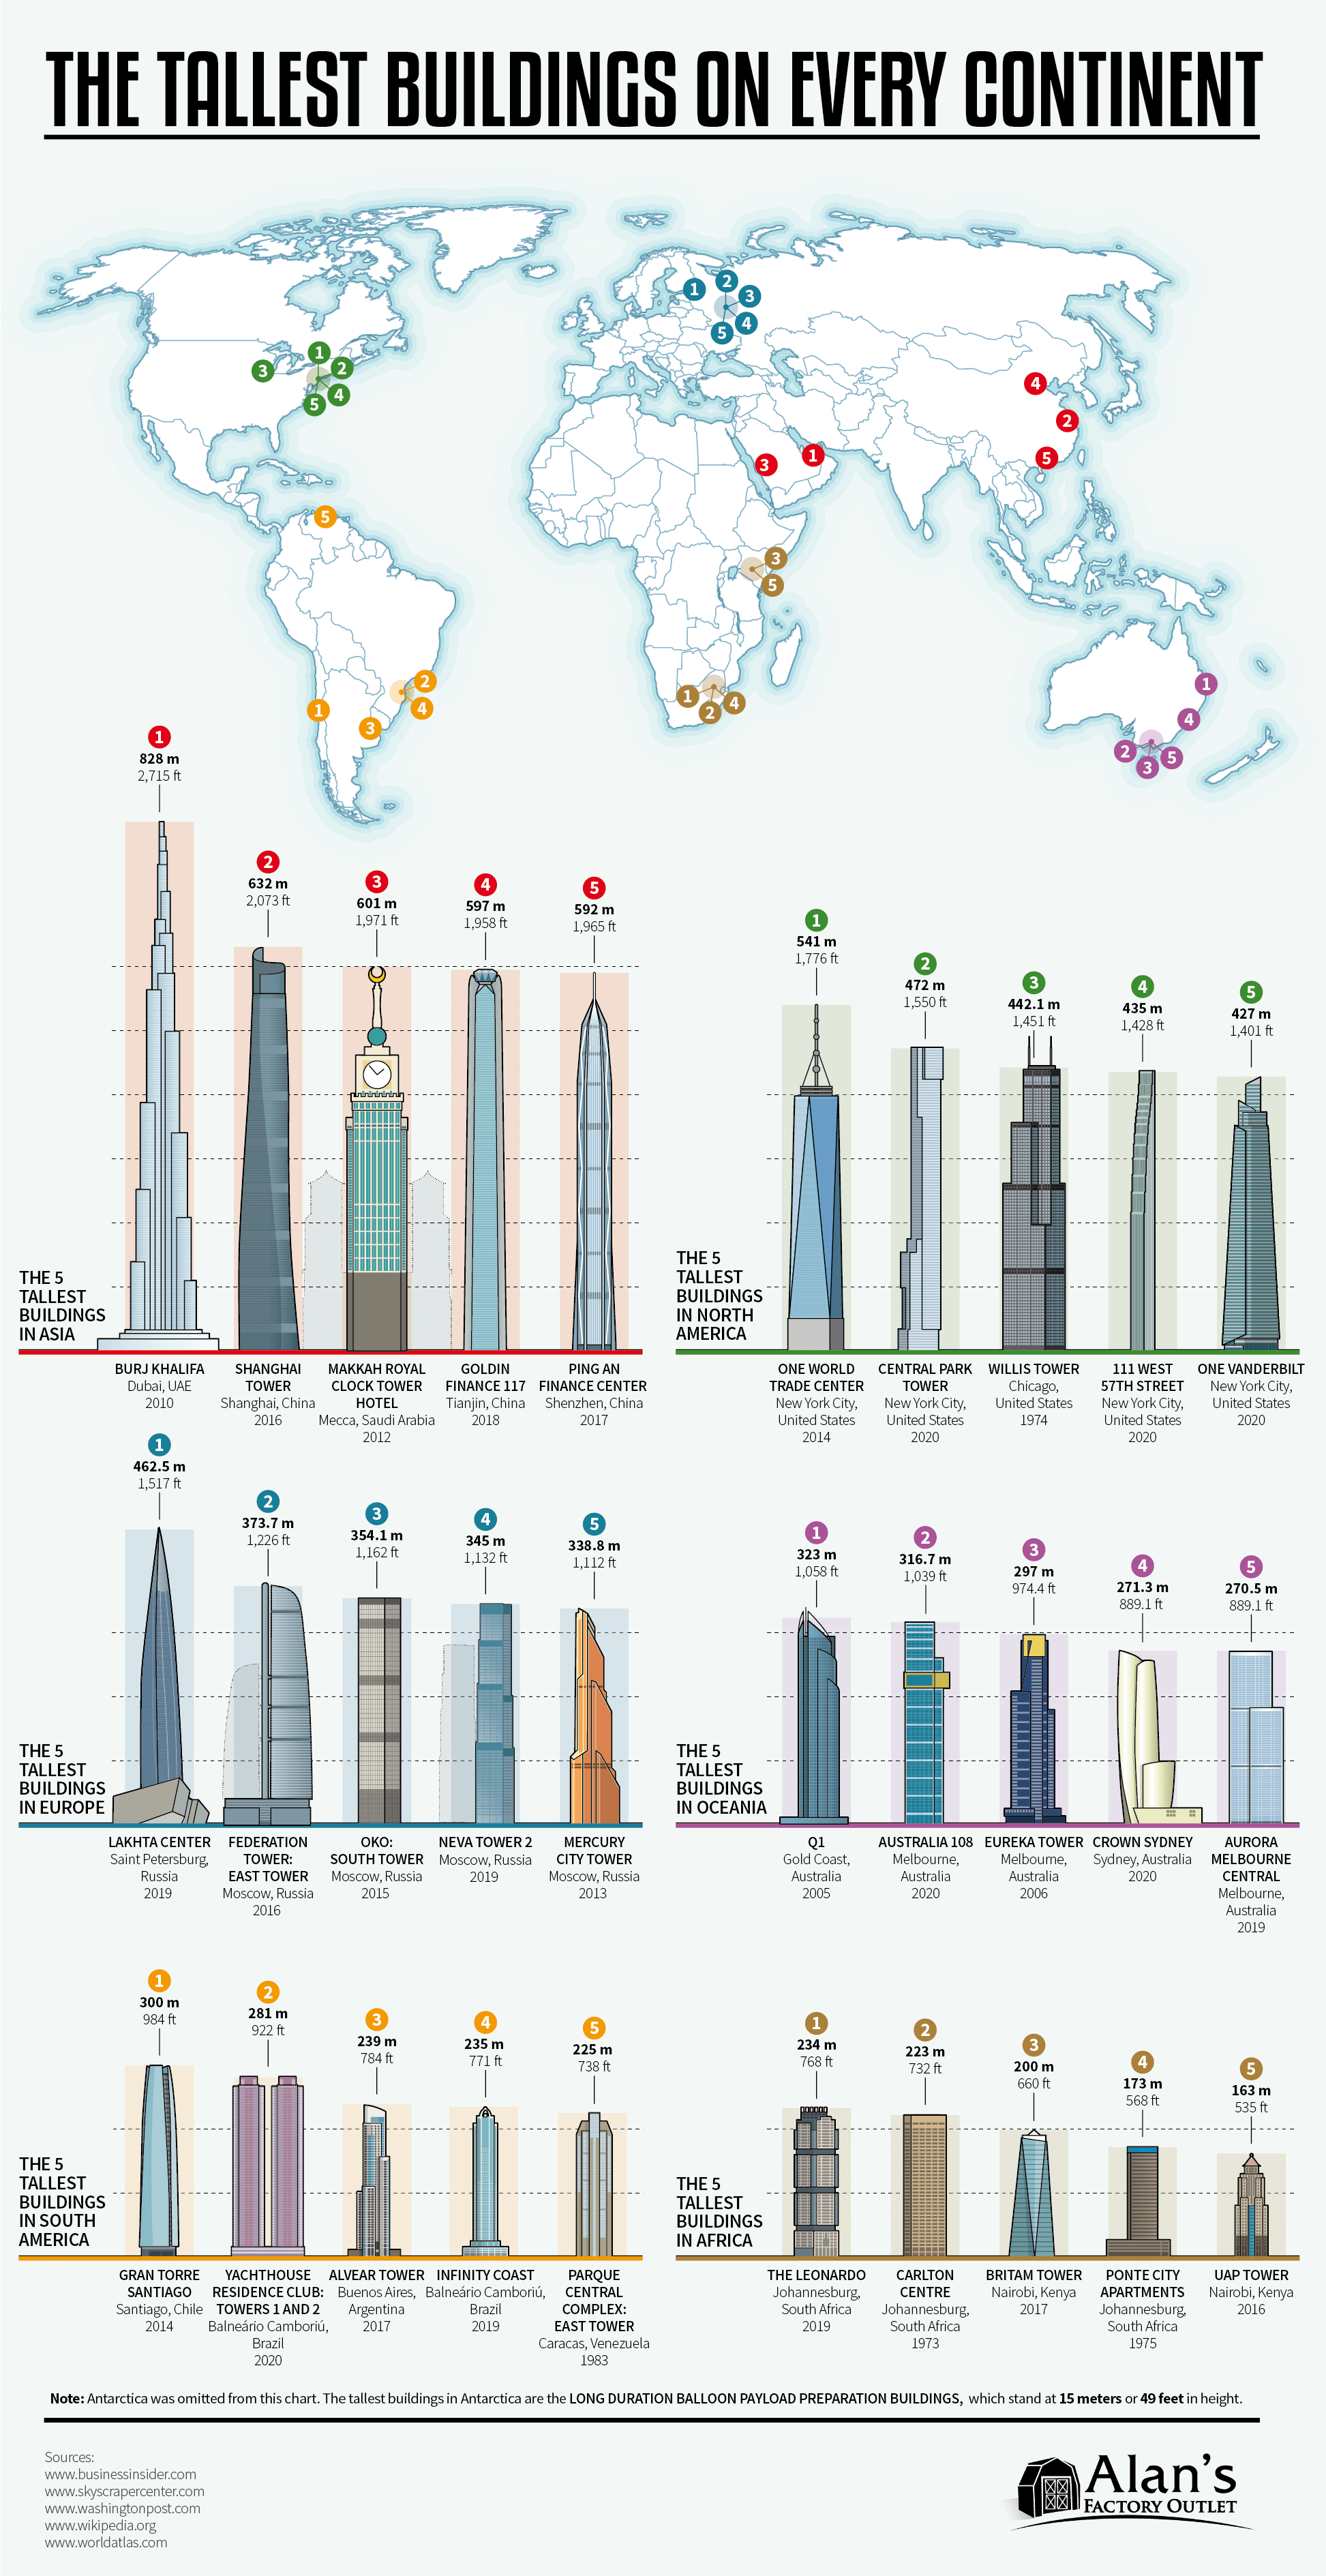 The Tallest Buildings on Every Continent - AlansFactoryOutlet.com - Infographic